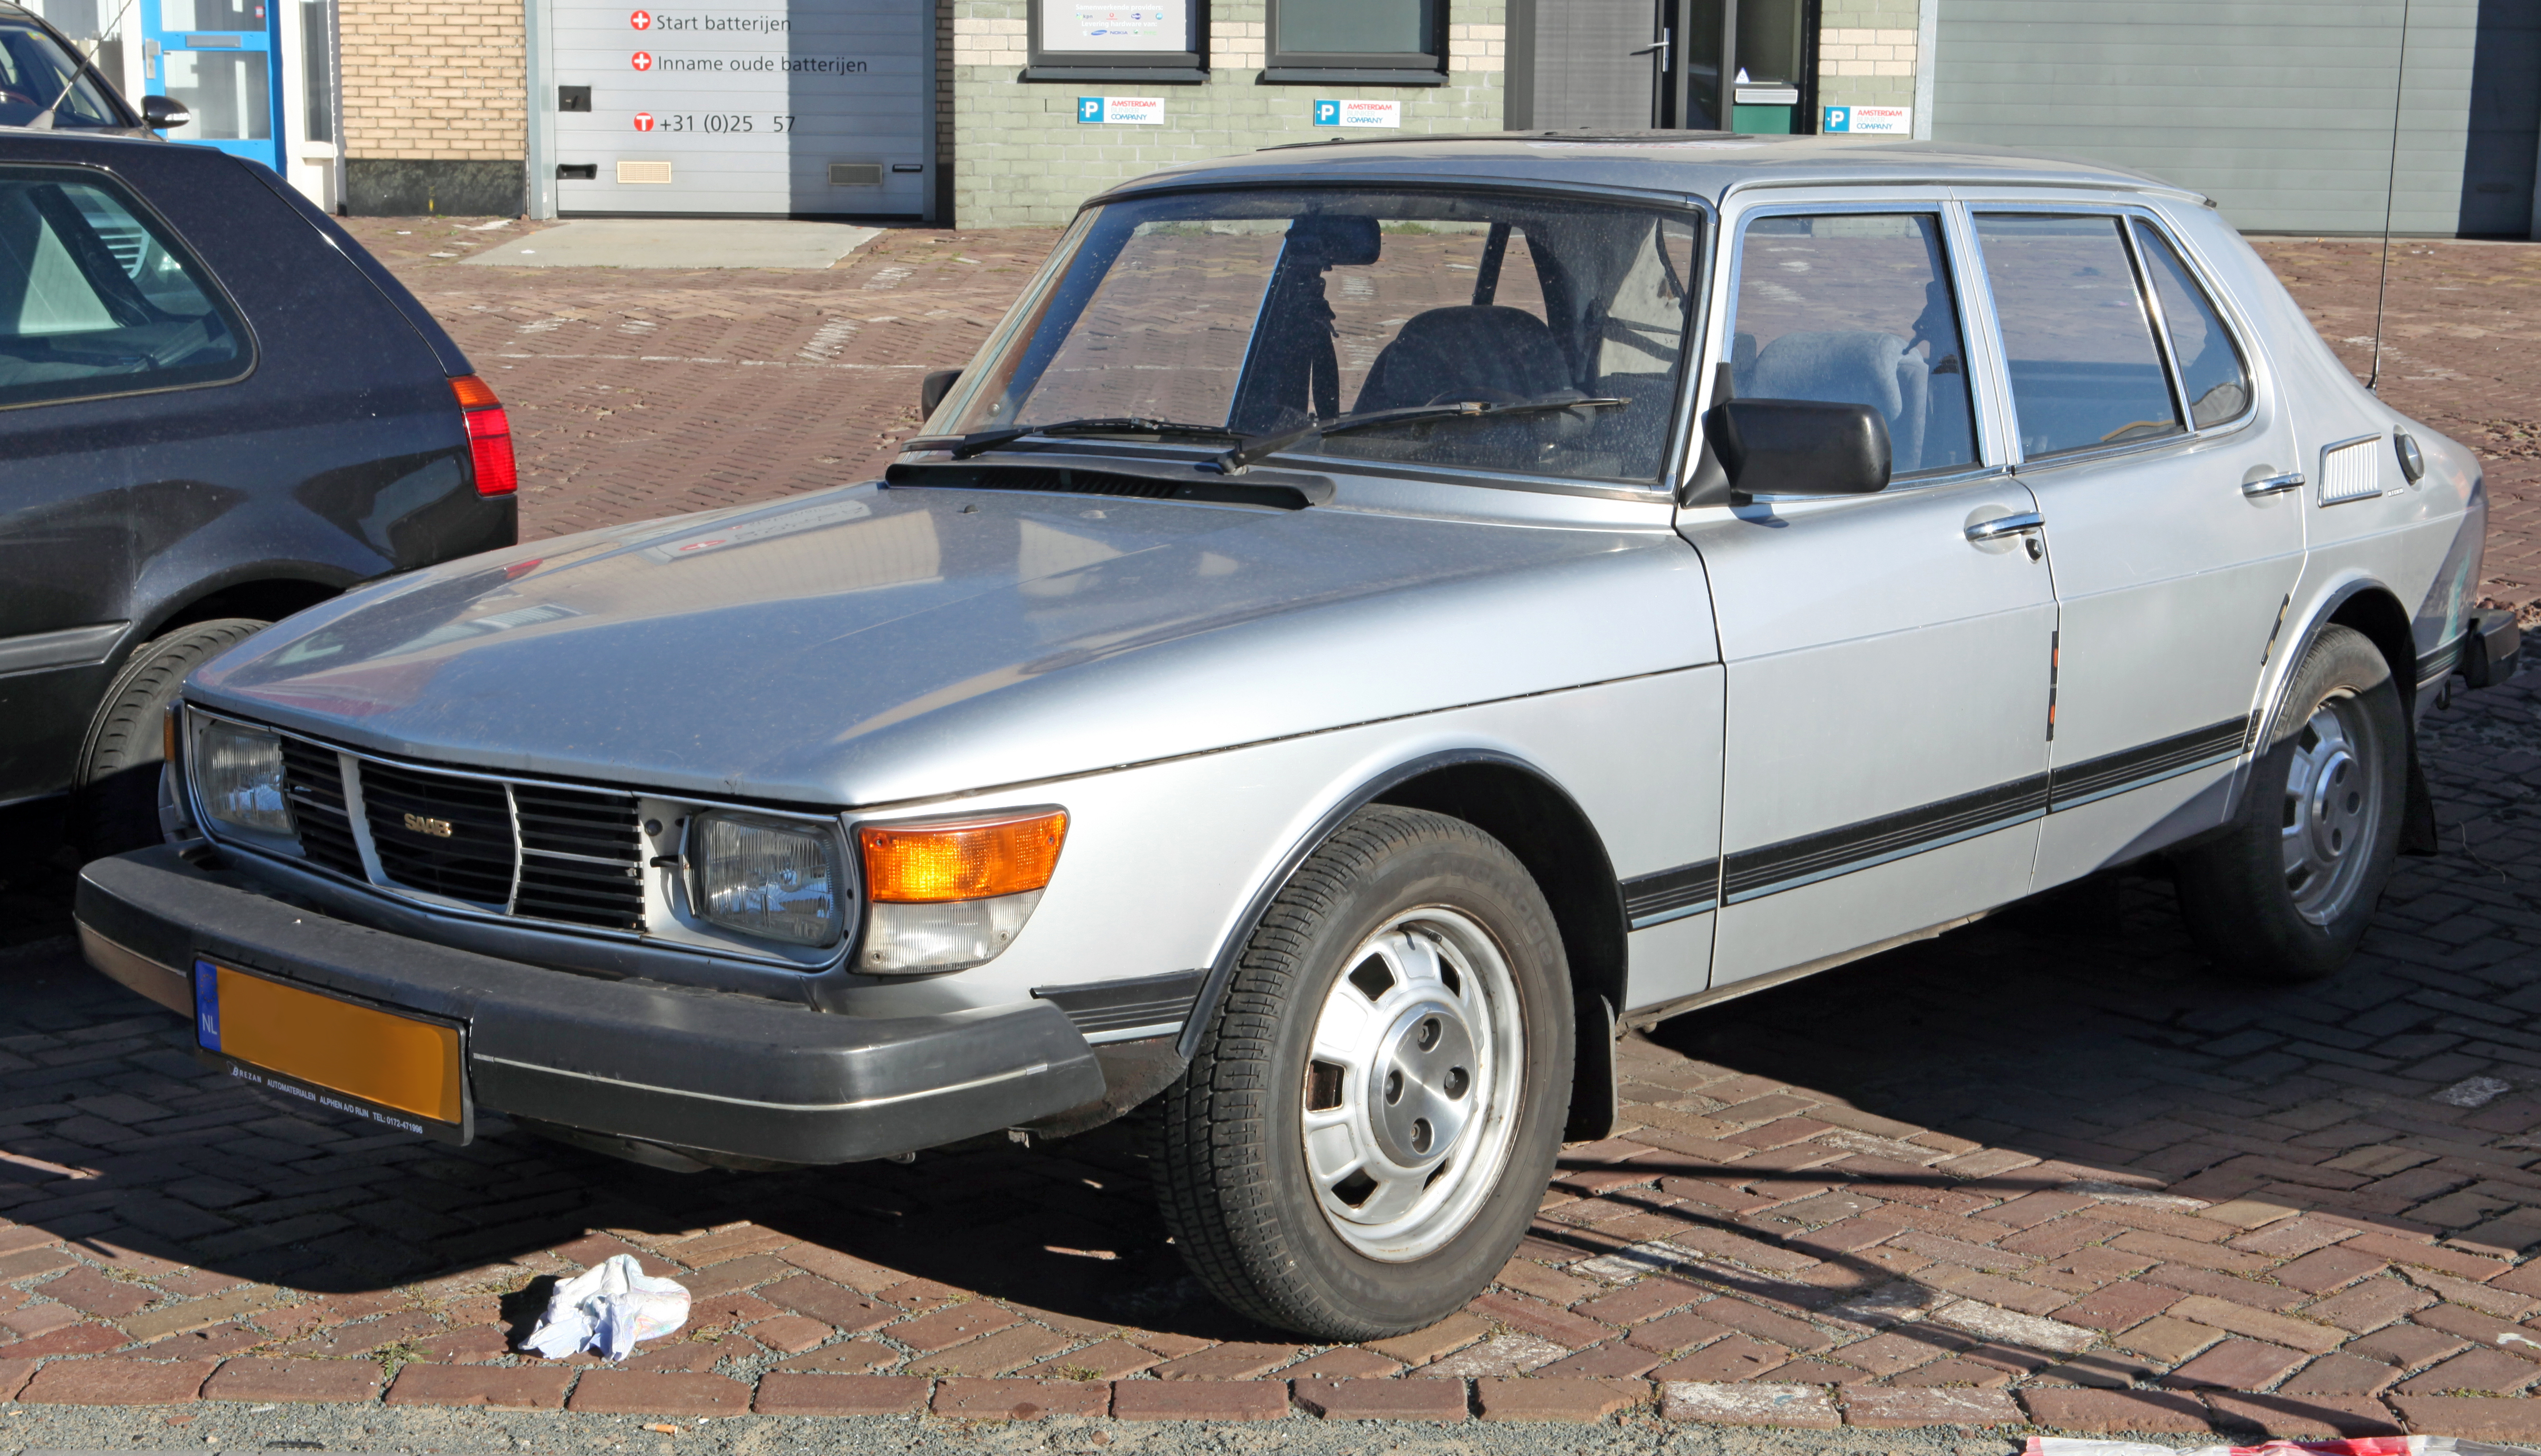 File:1982 Saab 99 4-dr.jpg - Wikimedia Commons